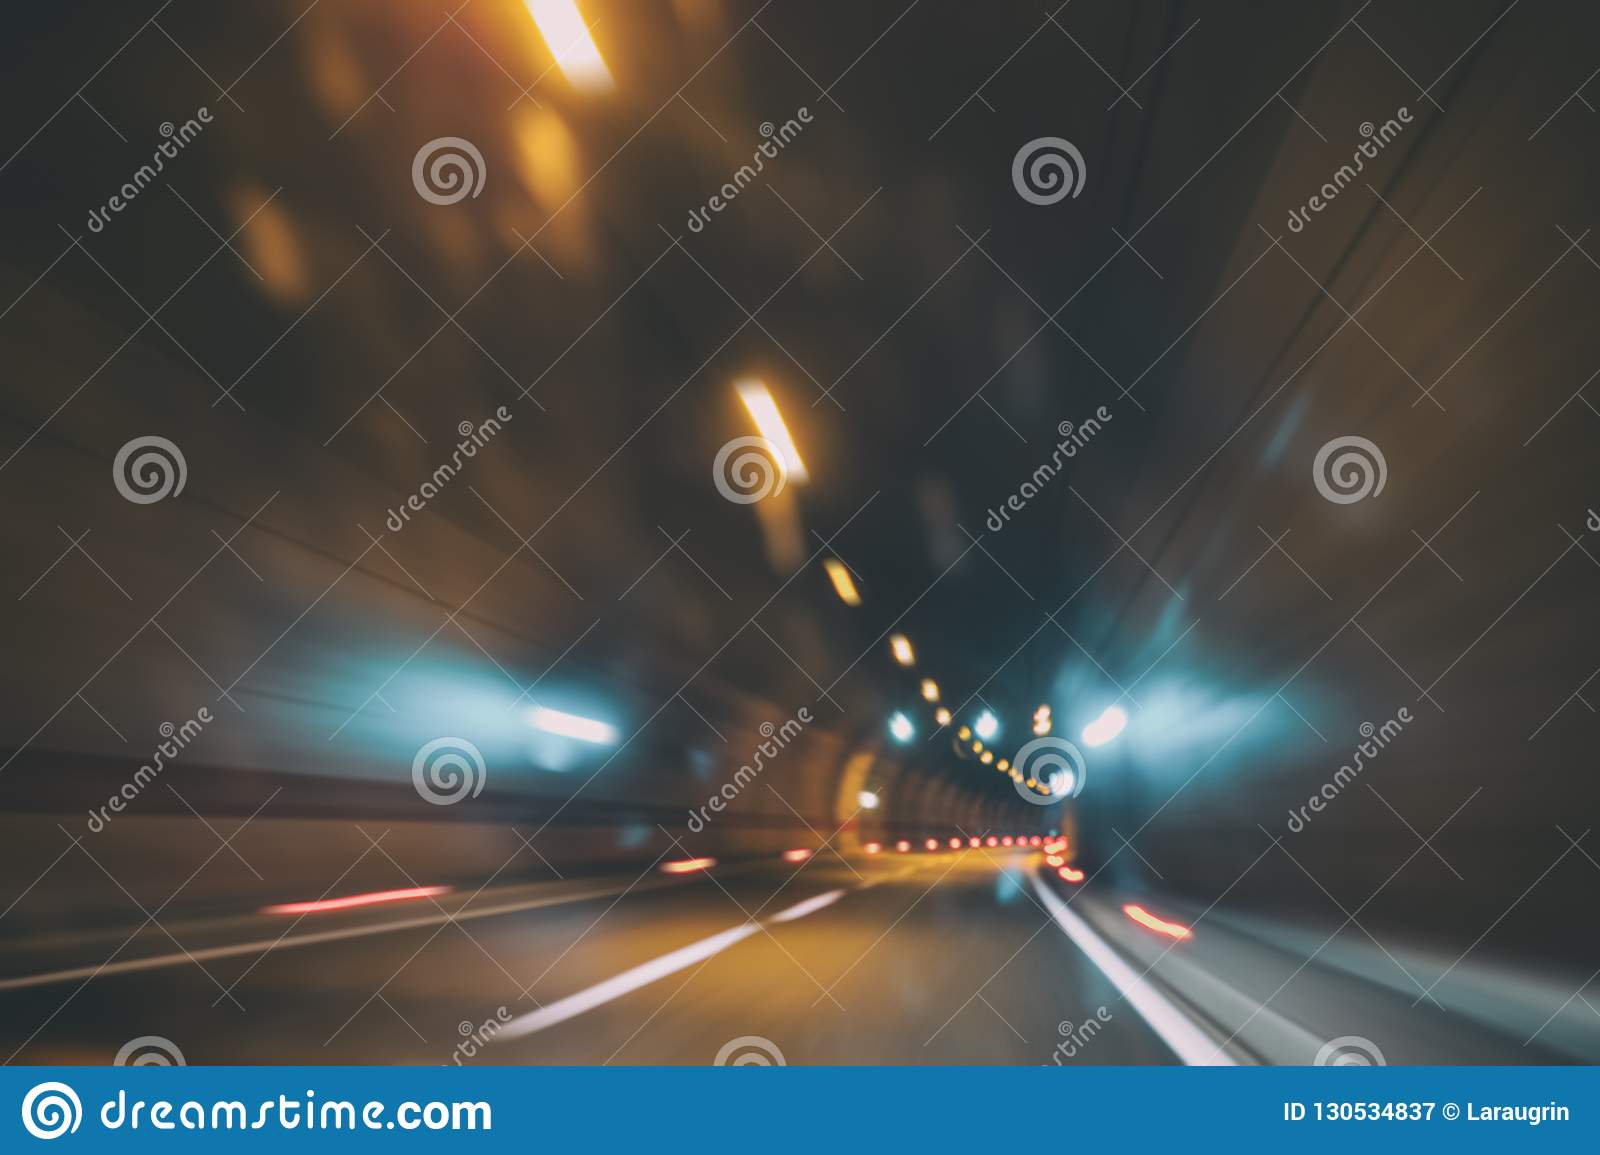 Blurry car tunnel with lights, motion blur background